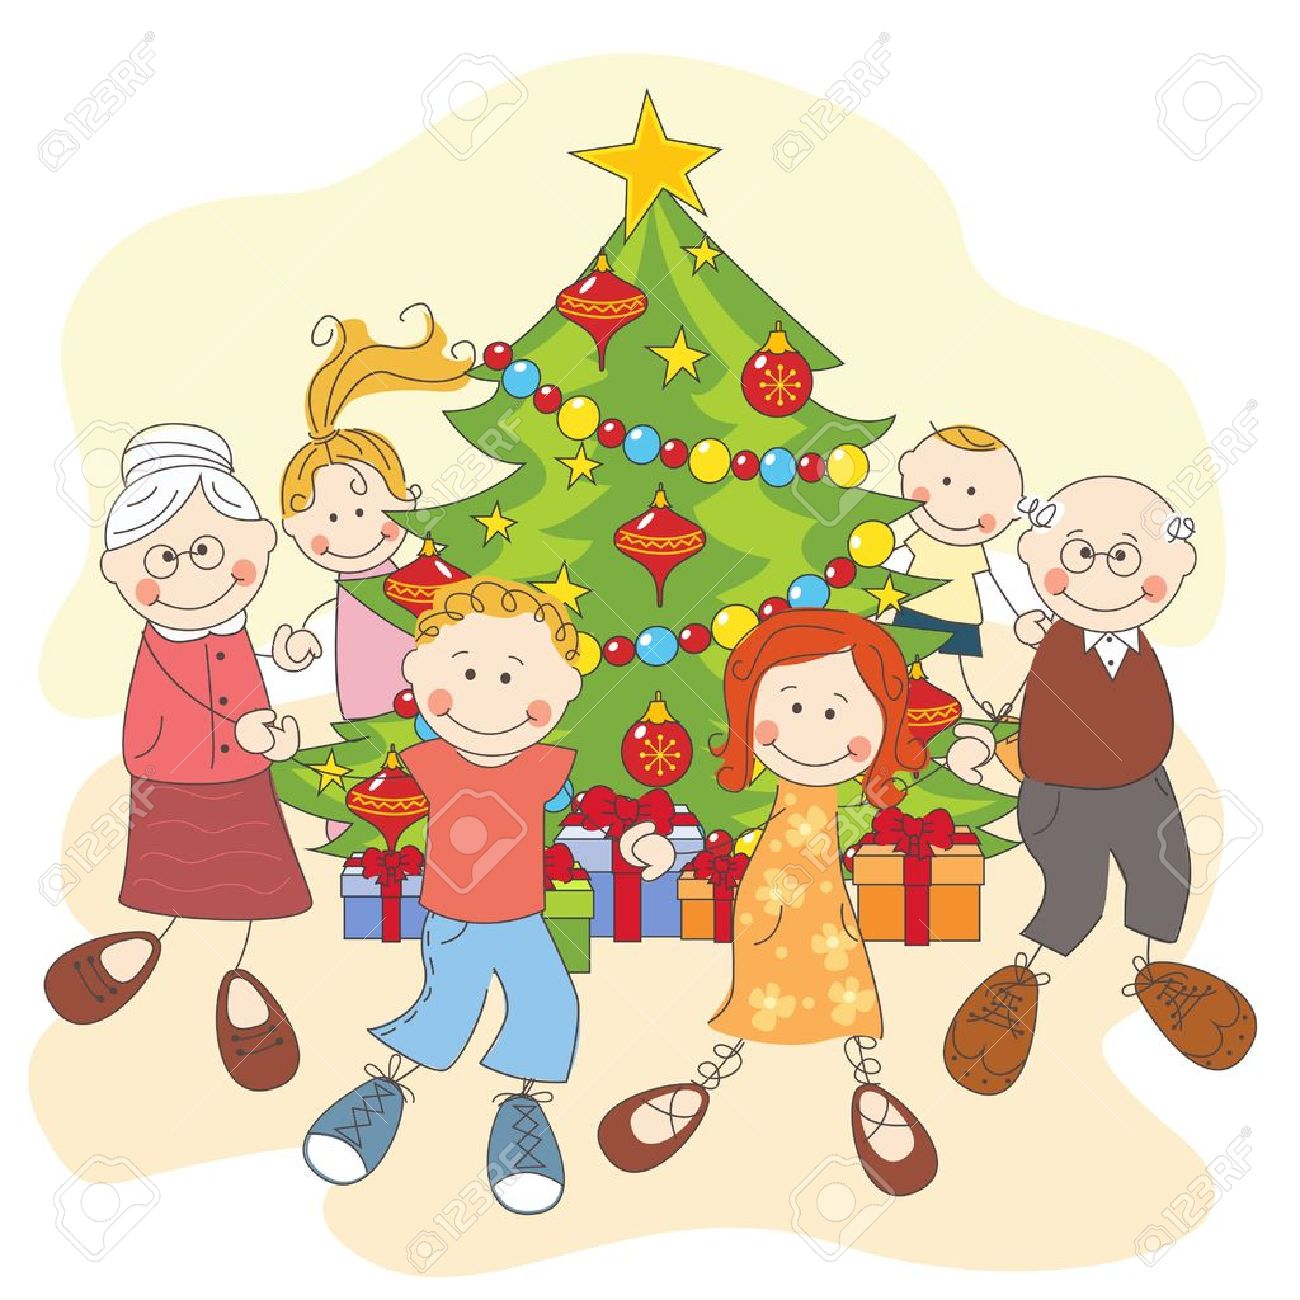 http://previews.123rf.com/images/sivanova/sivanova1212/sivanova121200015/16843237-Christmas-Happy-family-dancing-together-Hand-drawing-illustration-Stock-Vector.jpg